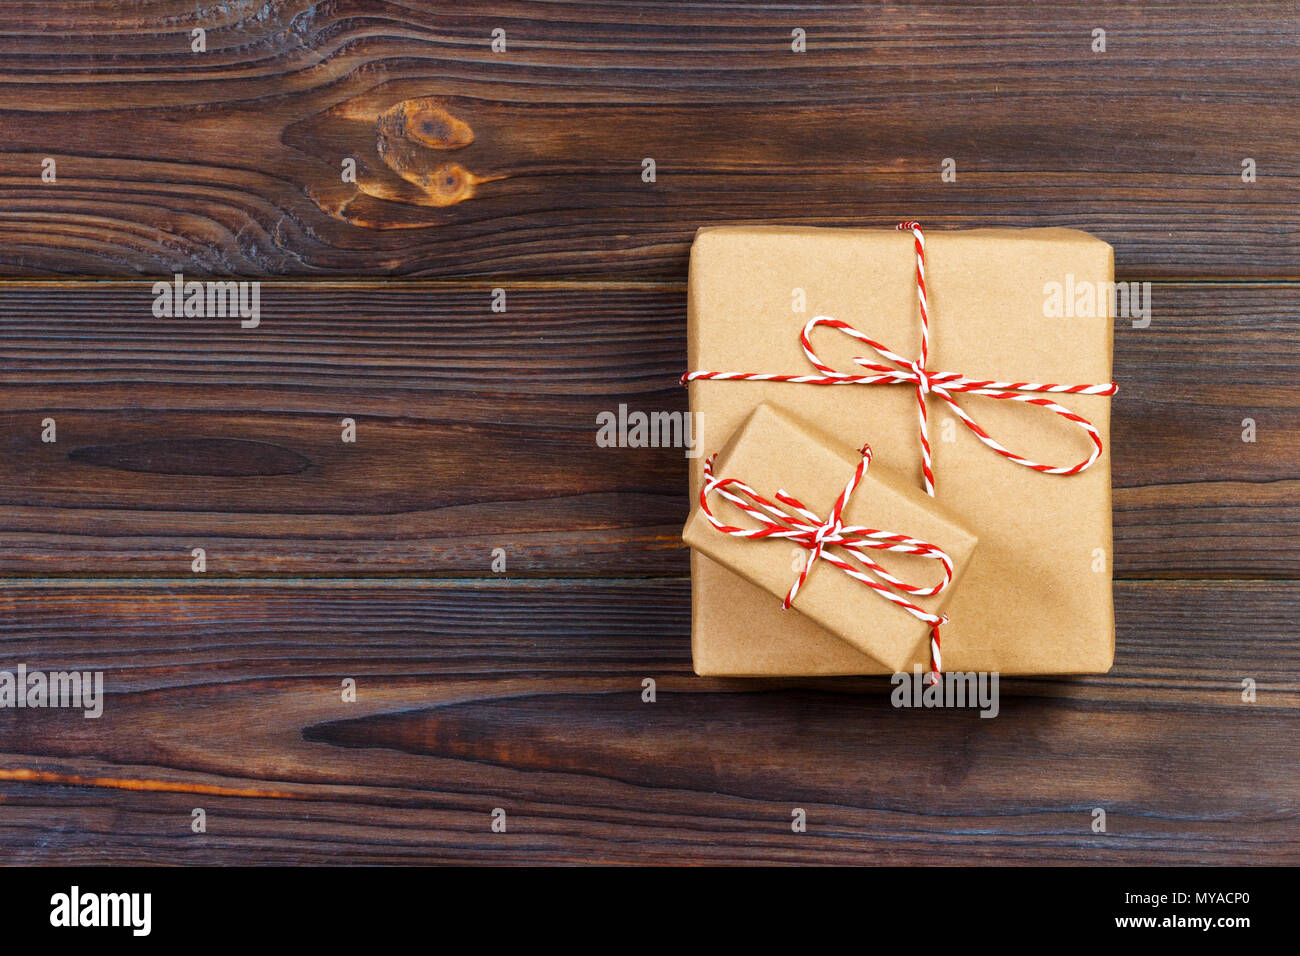 Christmas presents laid on a wooden table background. - Stock Image